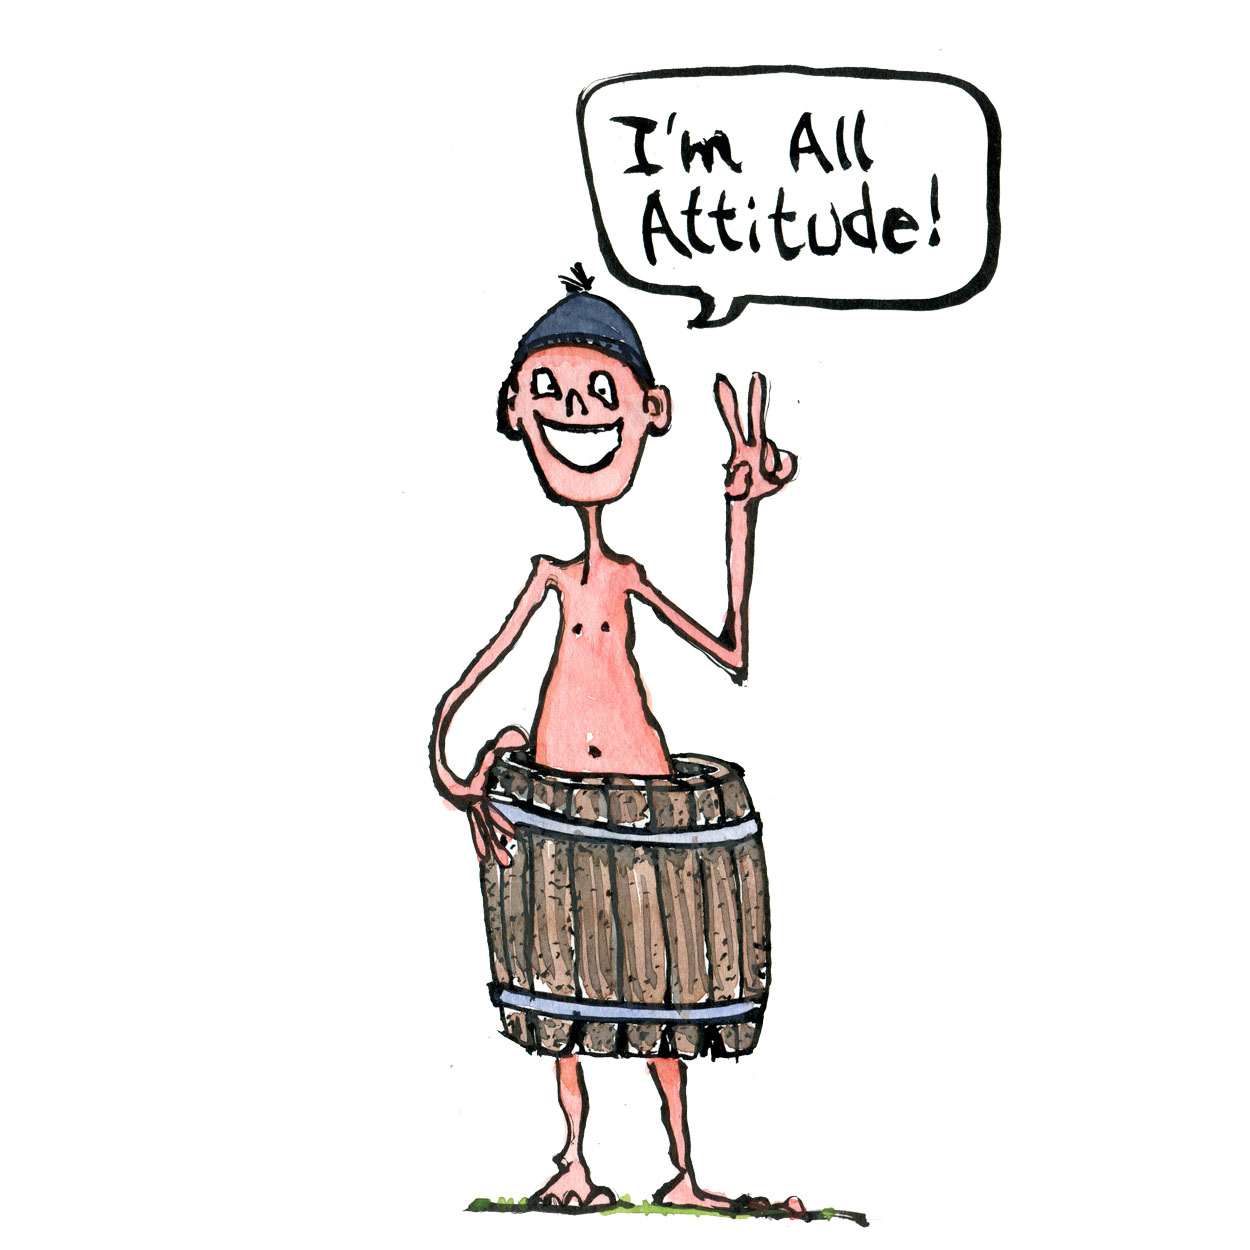 Man half naked in a barrel, saying I'm all attitude. illustration by Frits Ahlefeldt